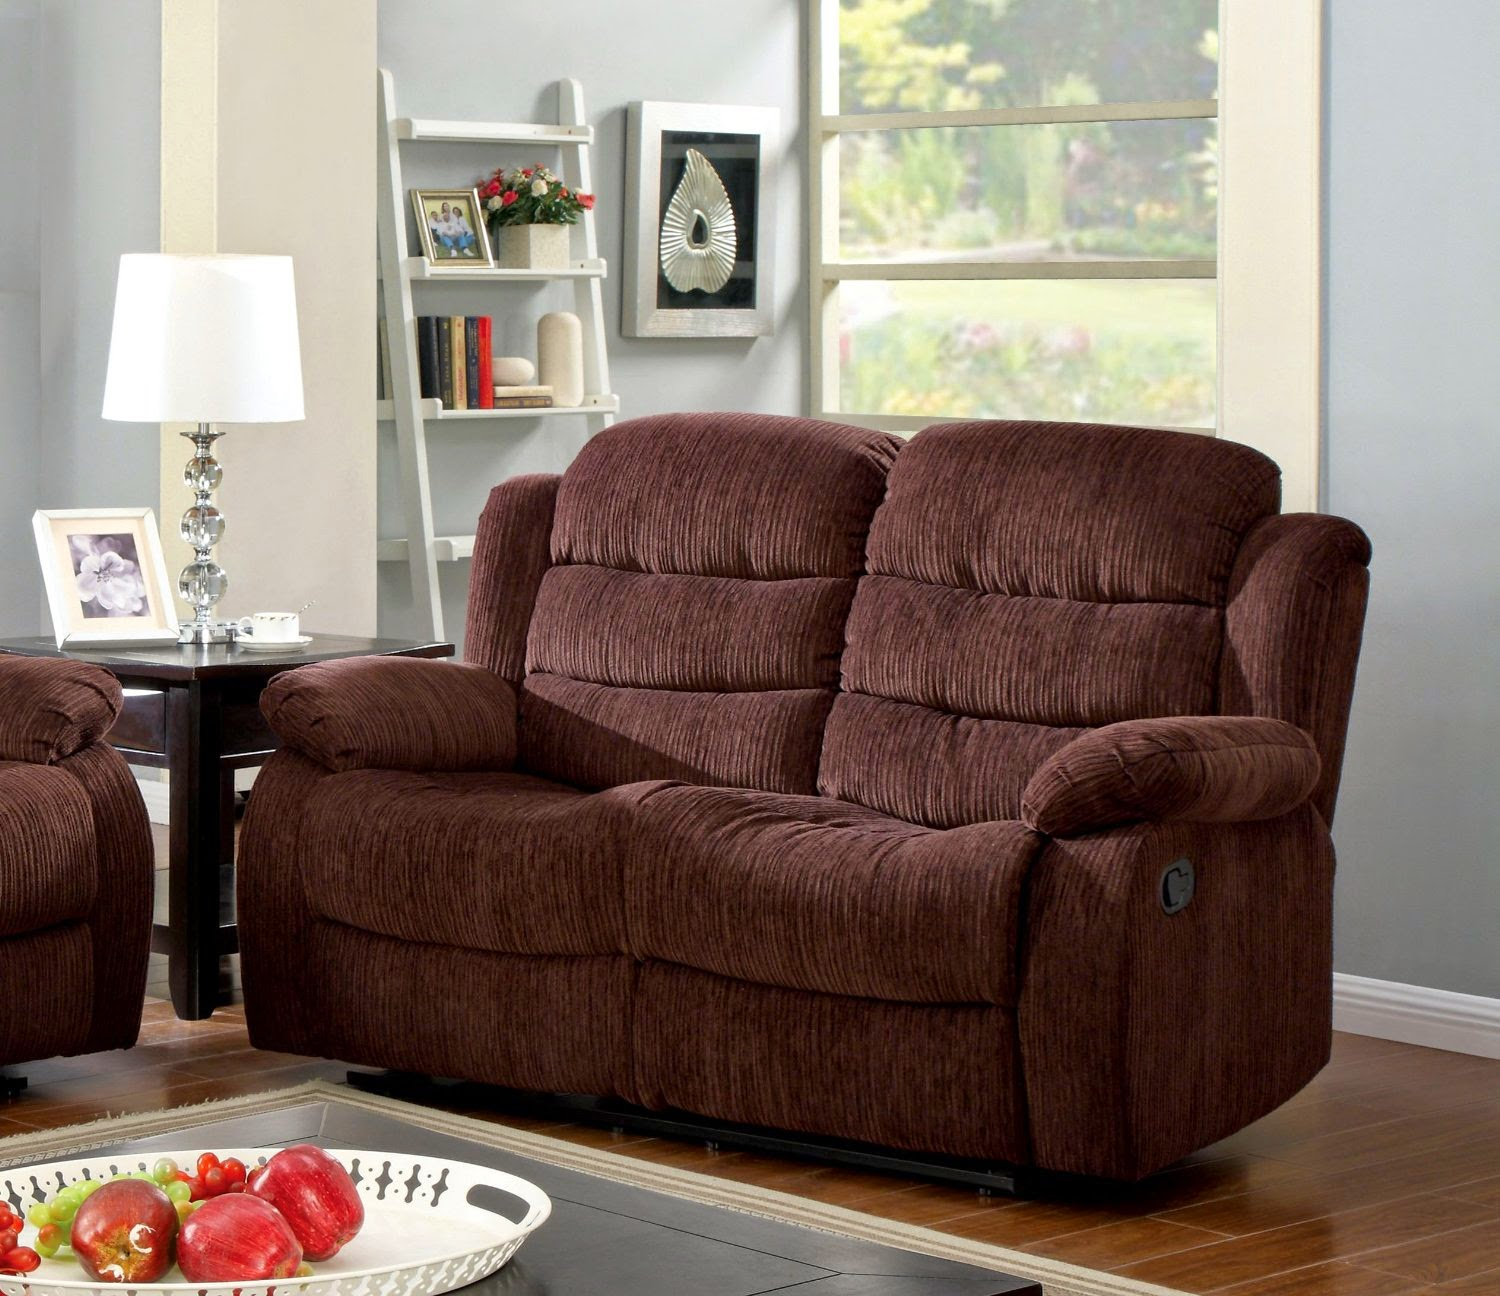 best place to buy sectional sofa plum sofas where is the recliner 2 seater